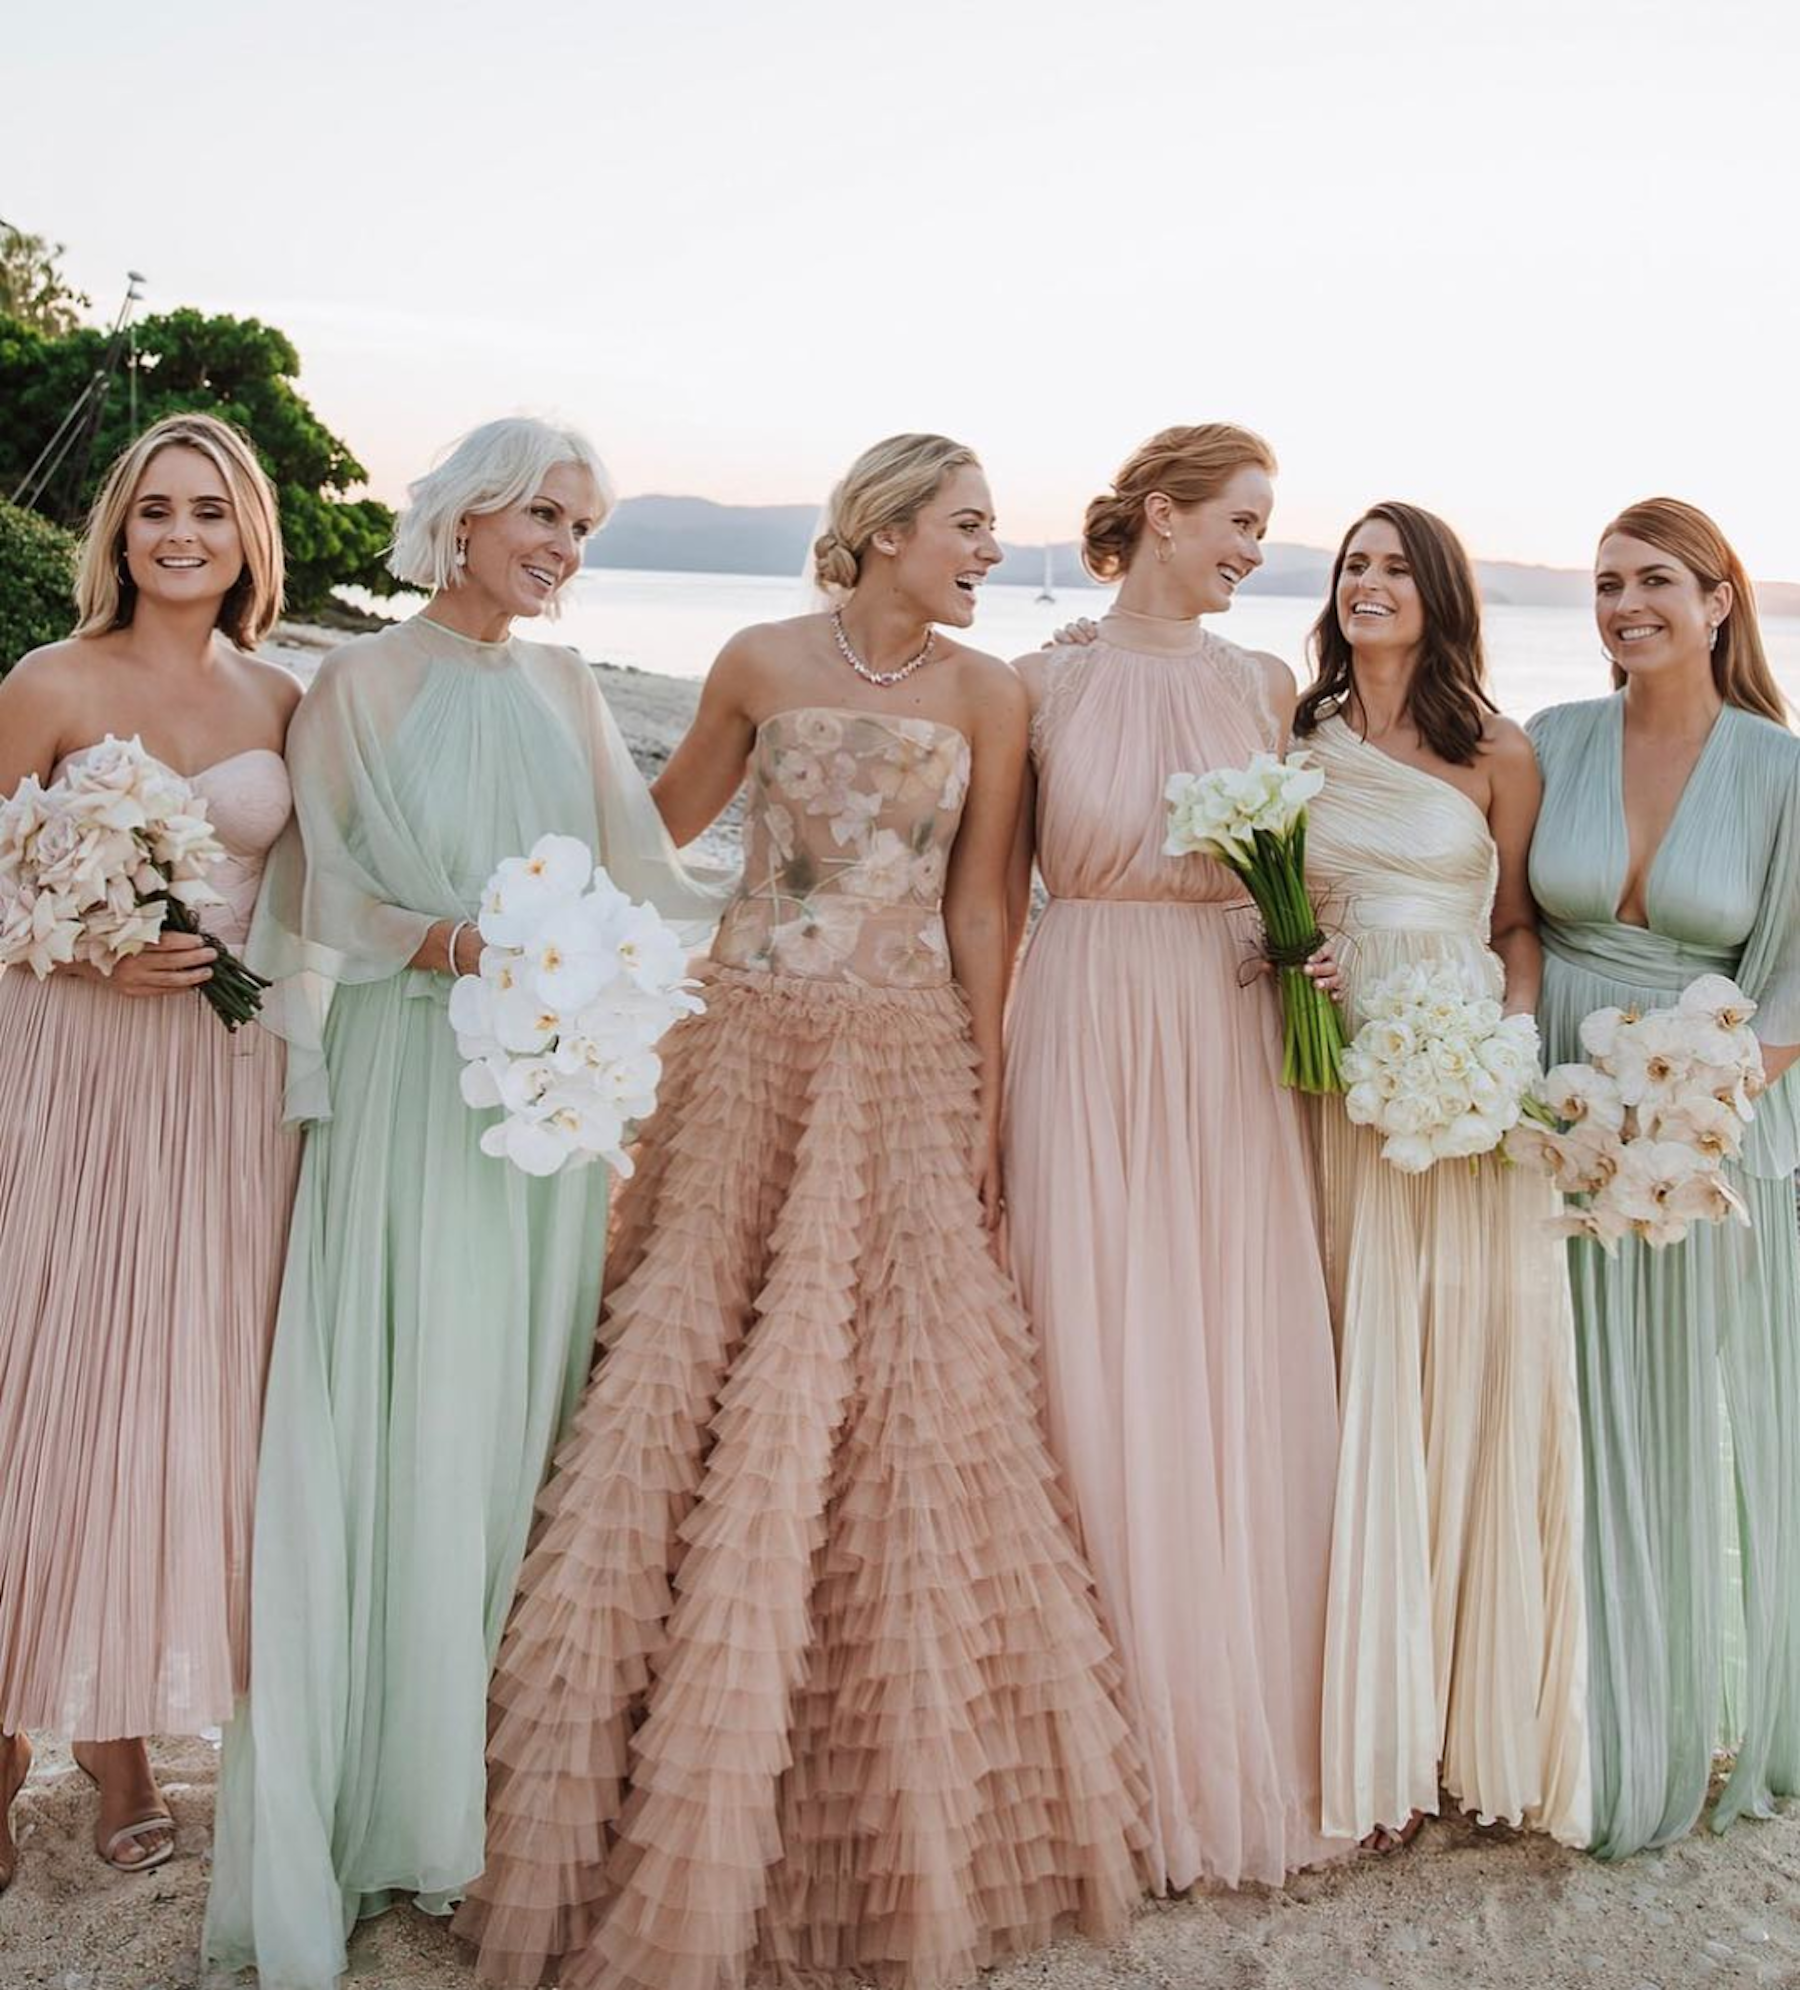 Deborah Symond served unconventional bridal beauty in a pastel Dior gown complete with a ruffled skirt and floral bodice. - Her bridesmaids coordinated perfectly with an assortment of sorbet colored dresses.Photo by Alice Mahran.